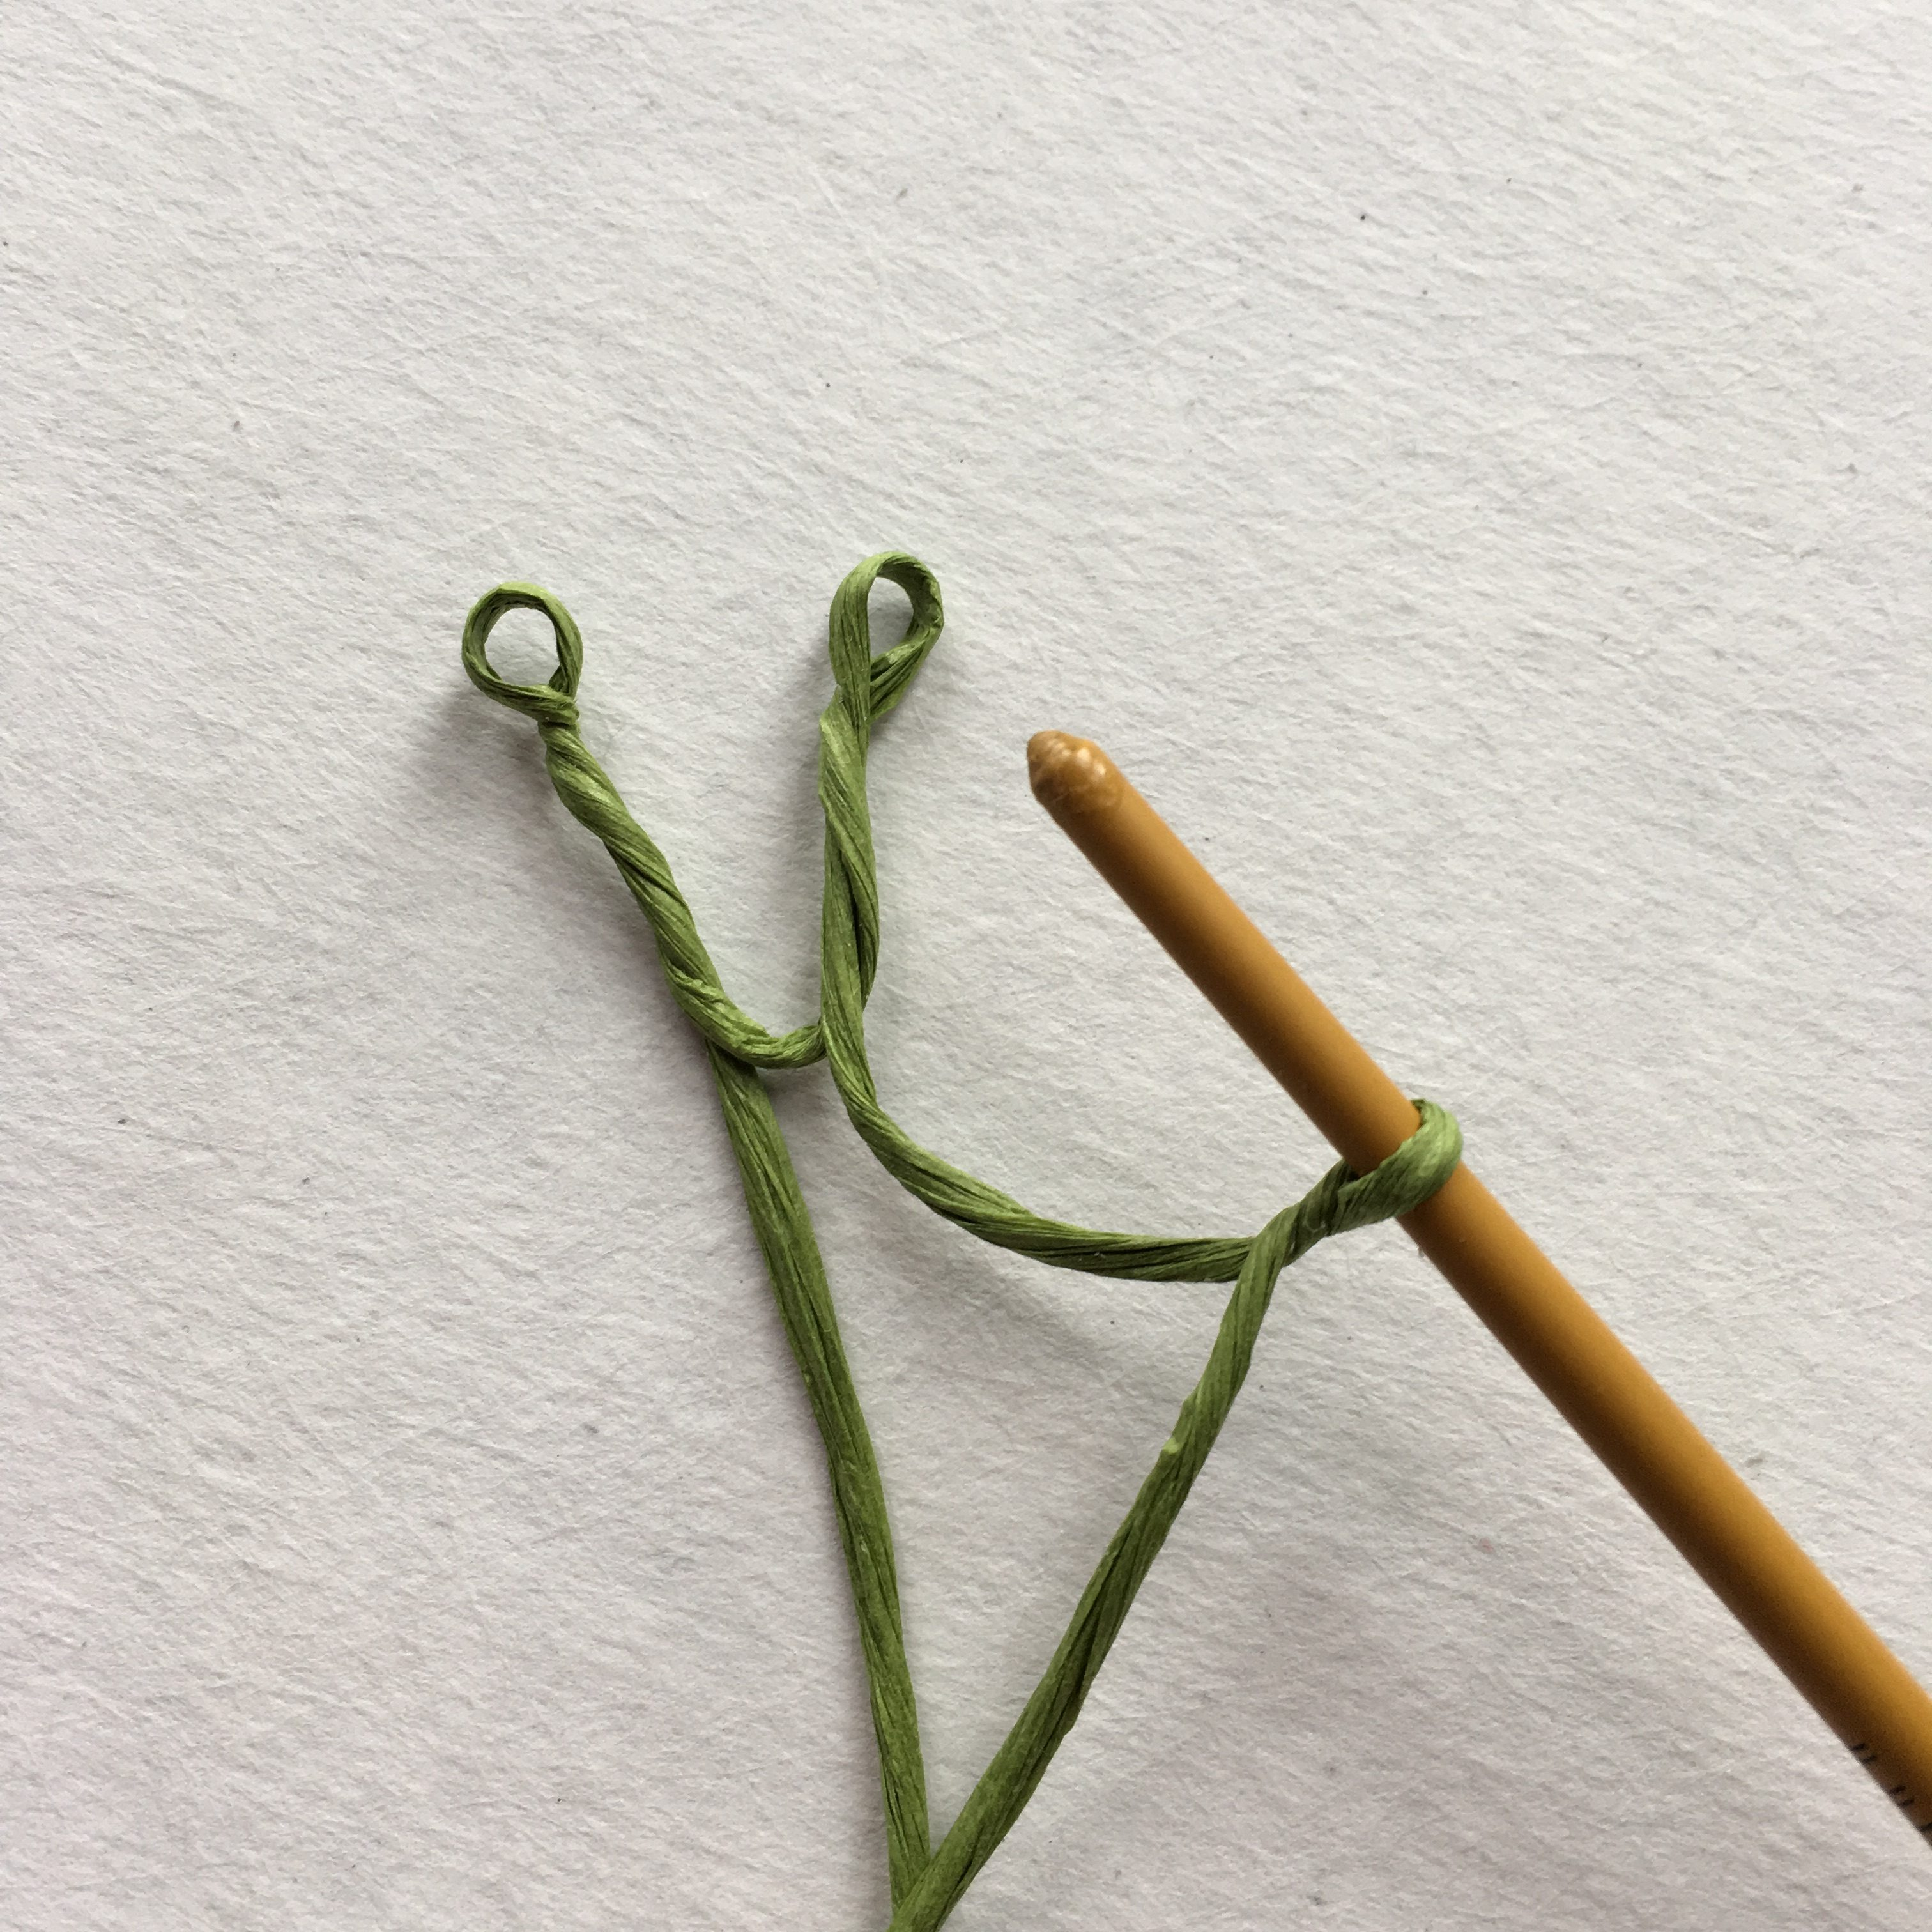 twisting paper wire with wooden stick